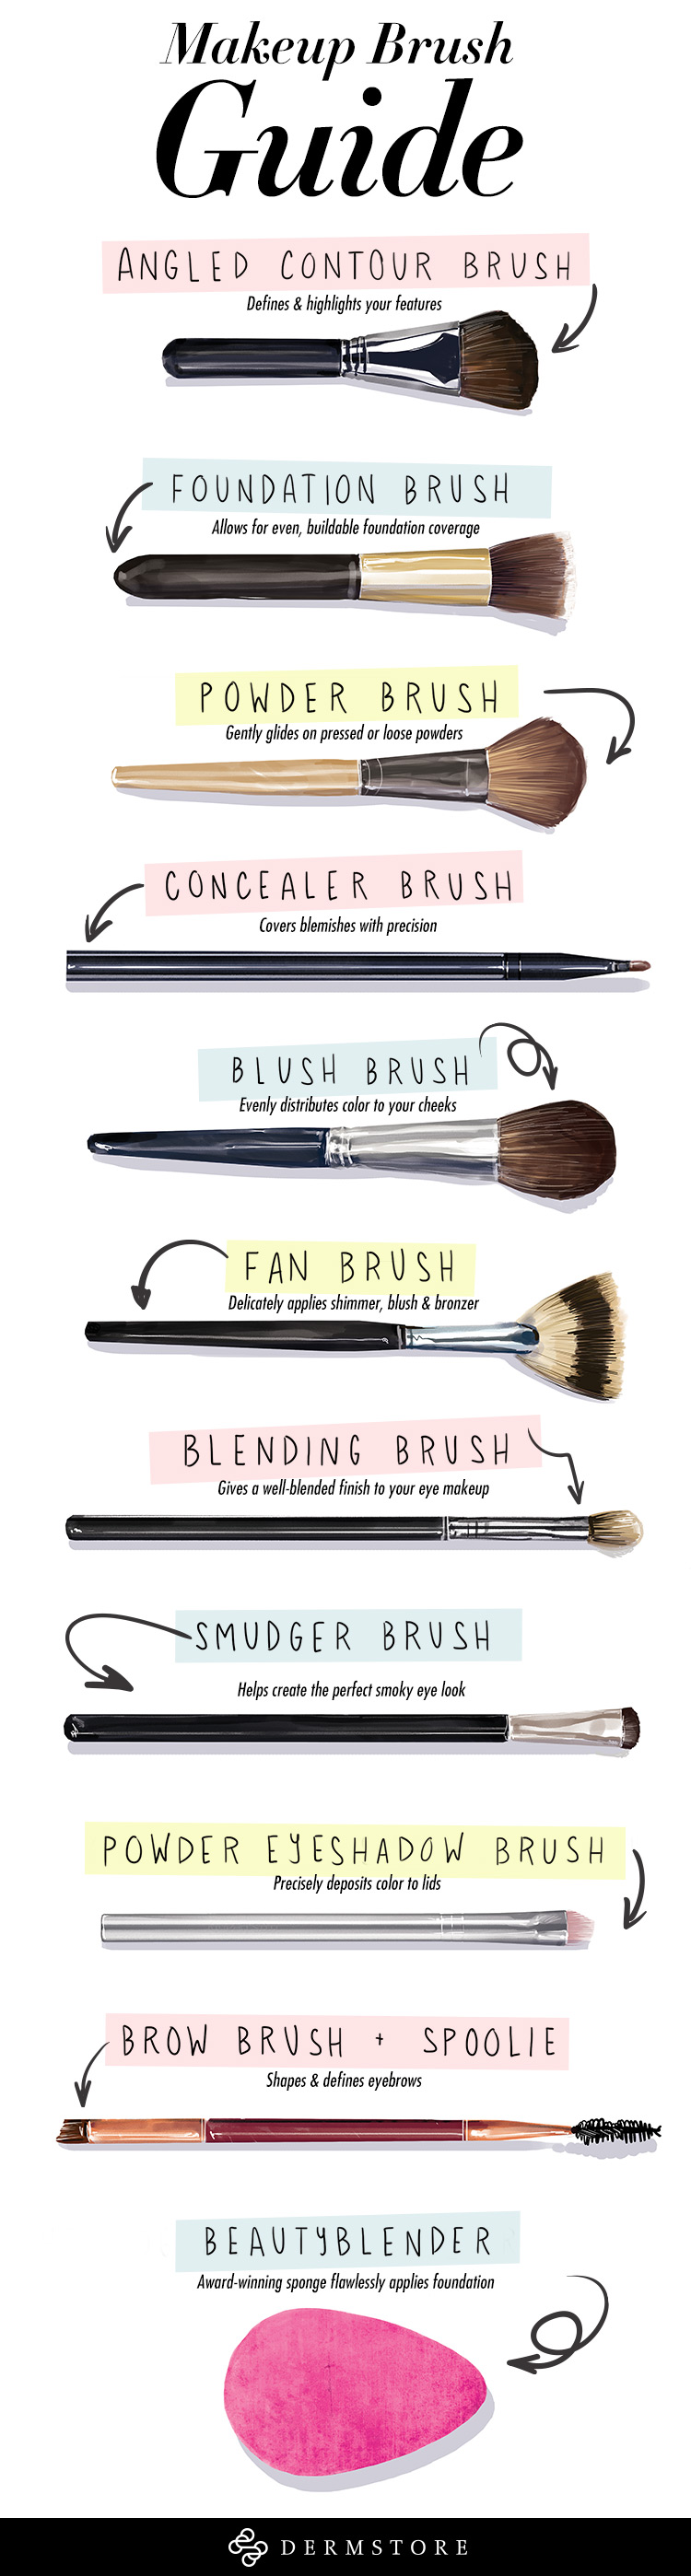 makeup-brush-guide-infographic.jpg